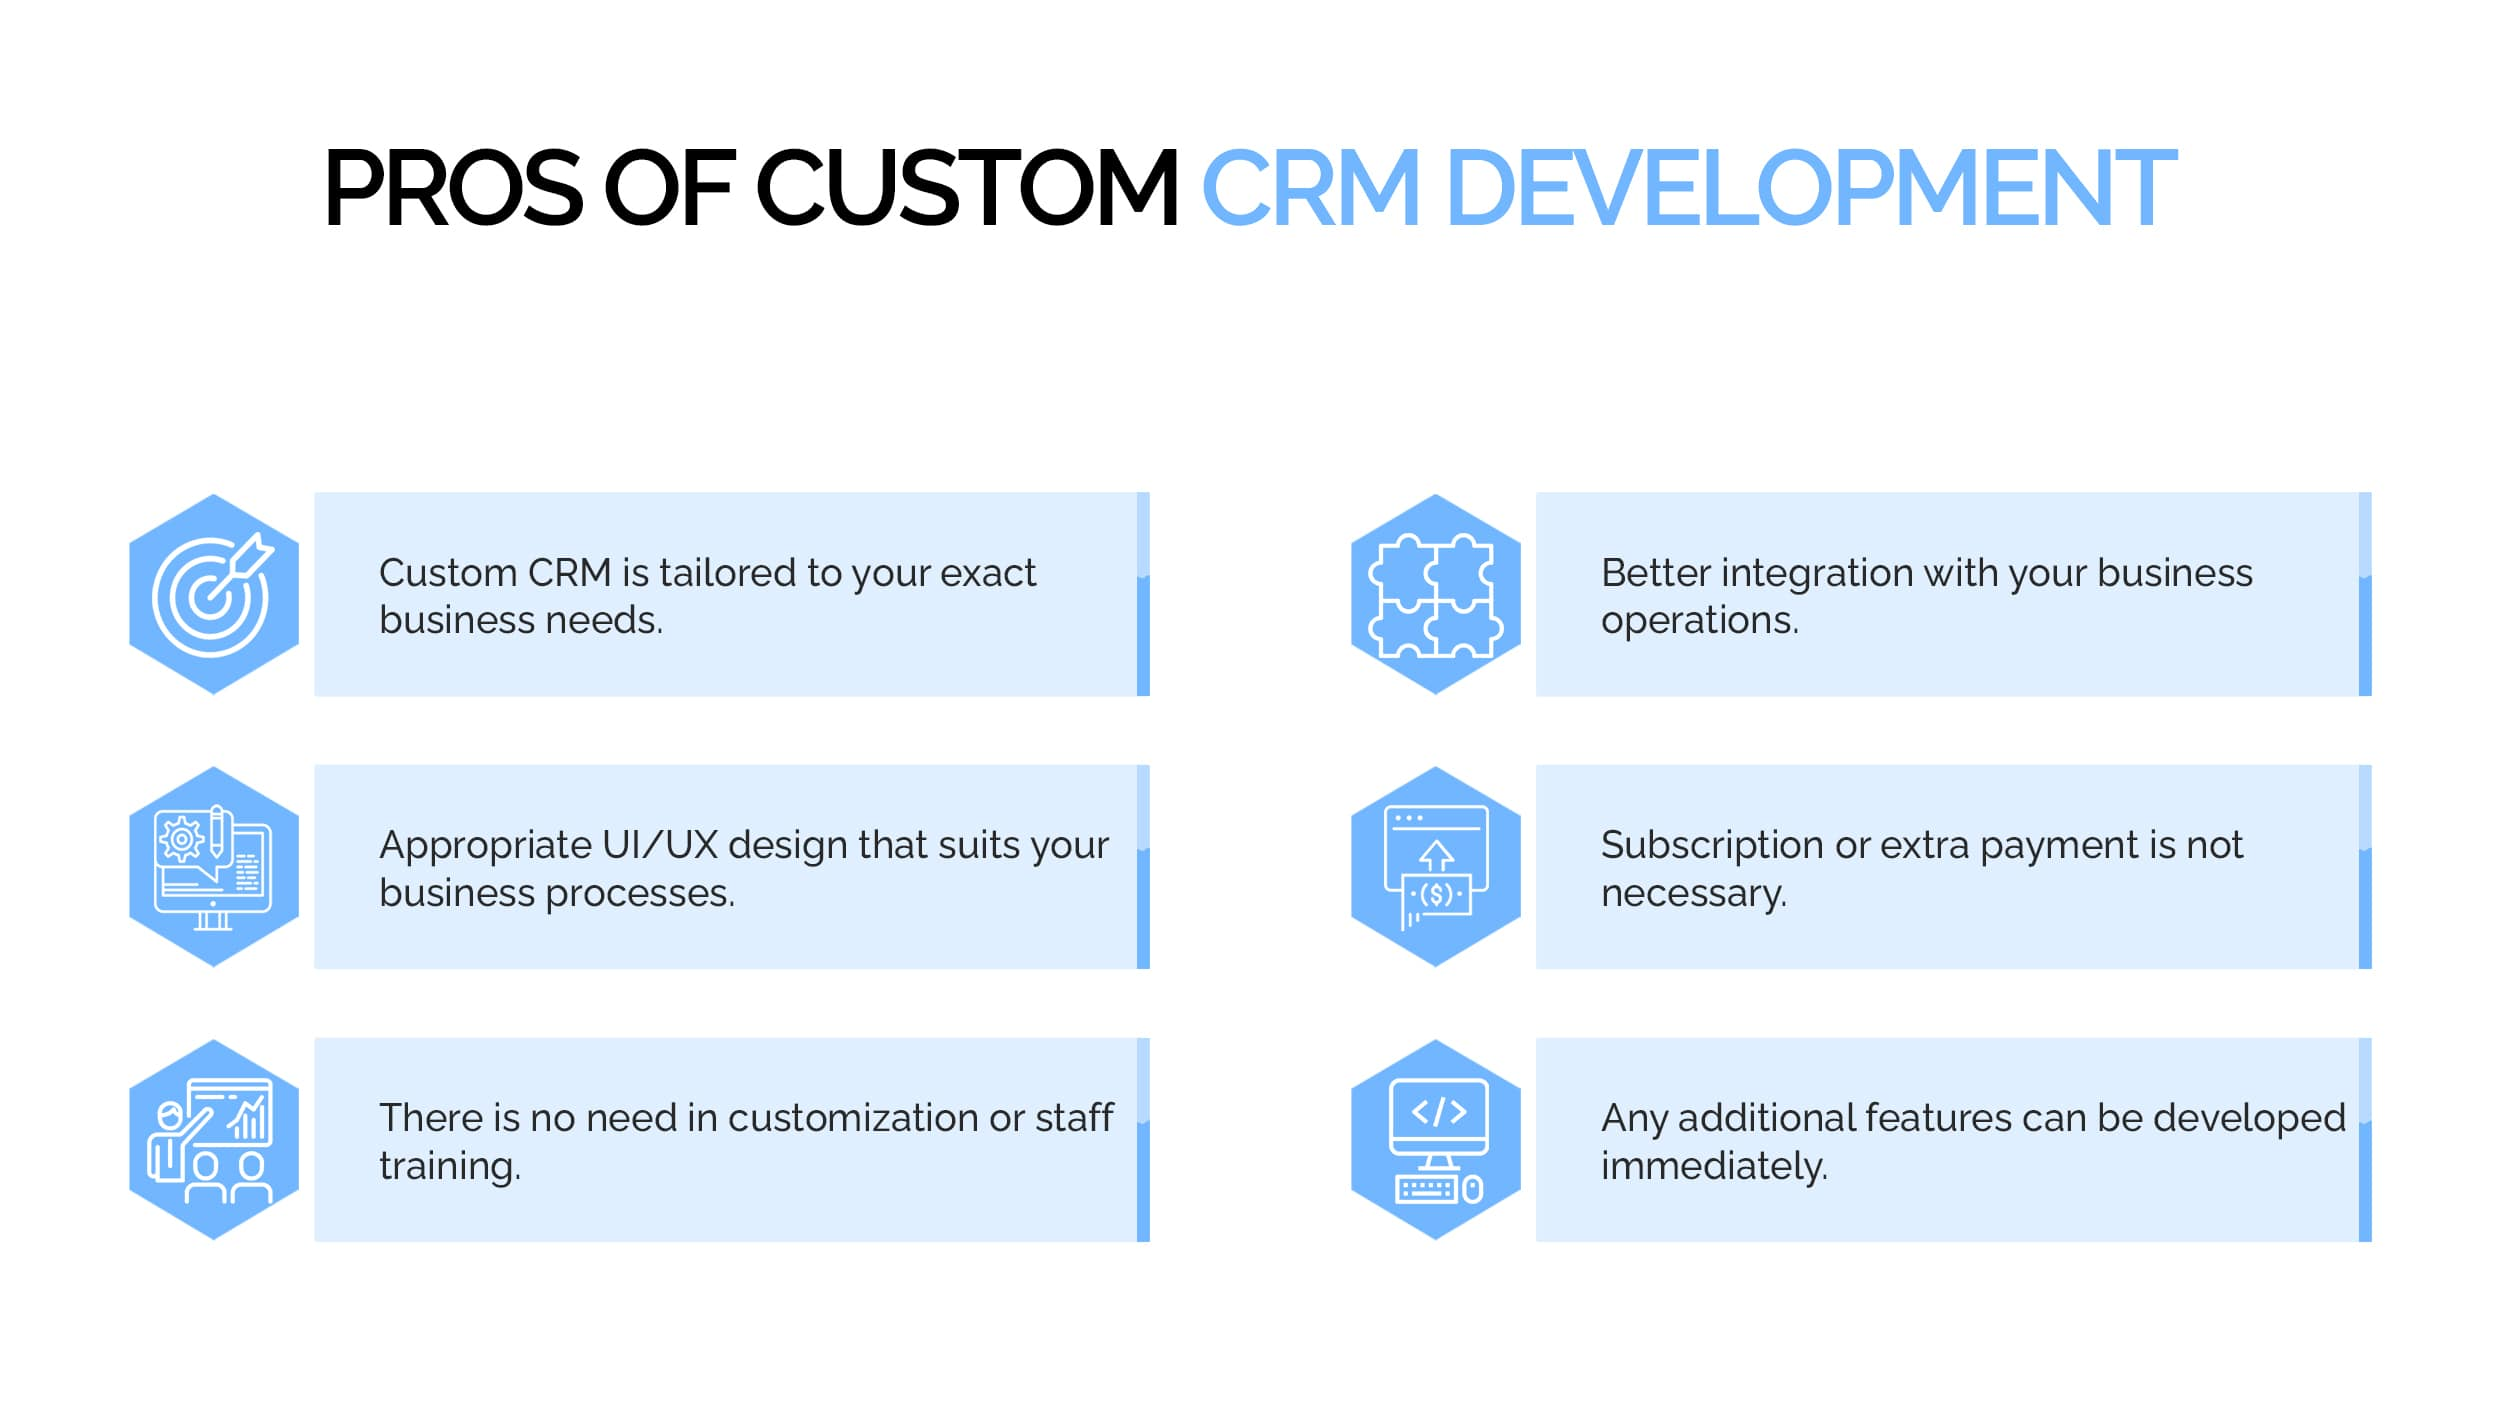 Pros of custom CRM Development